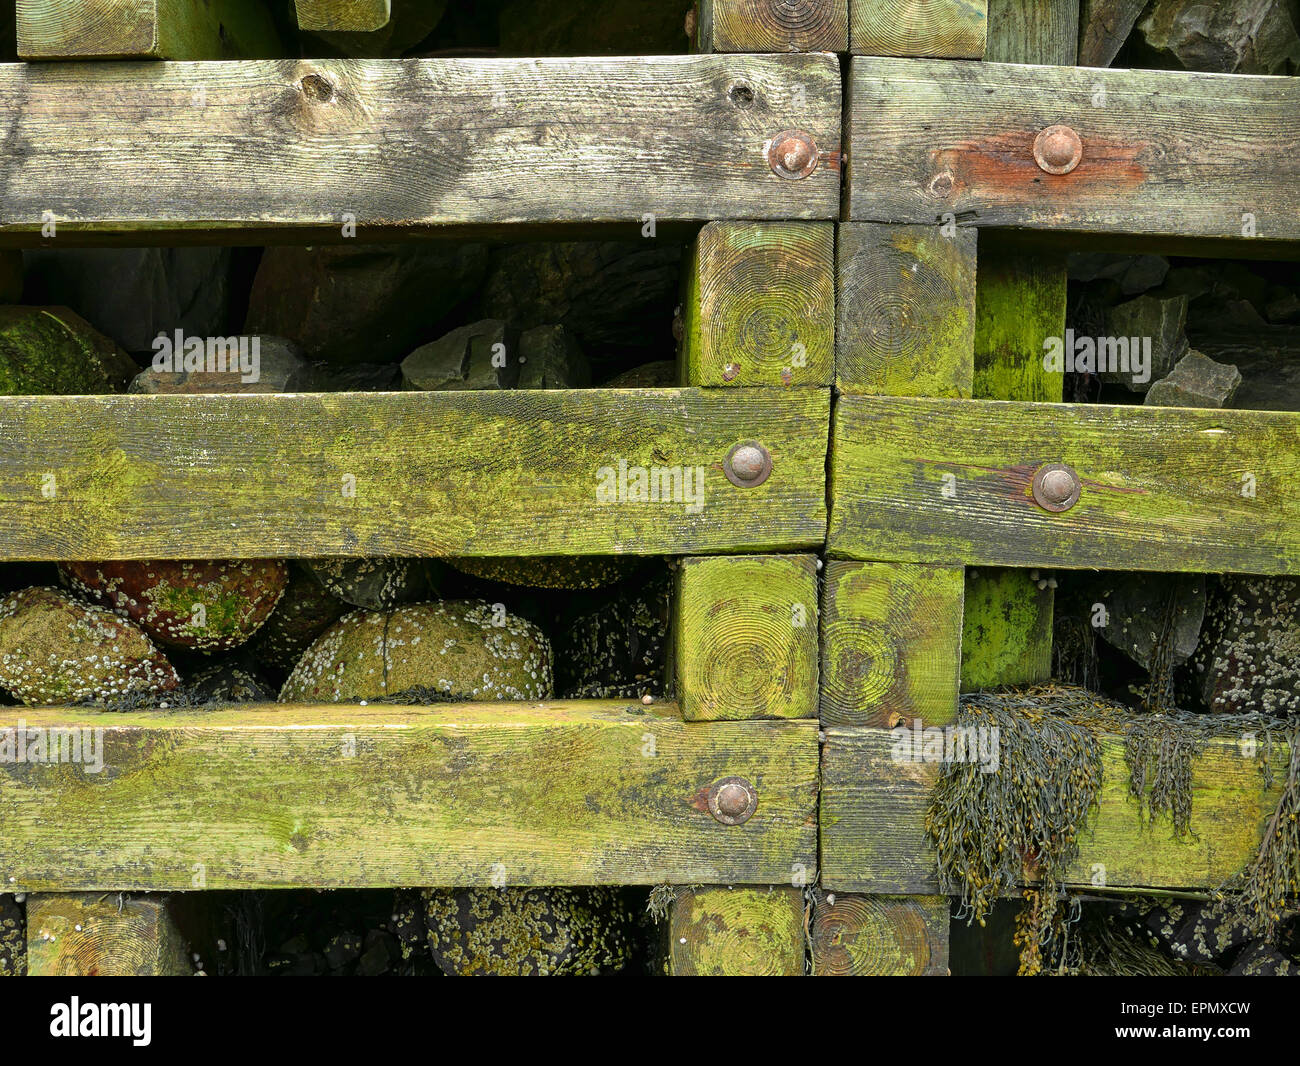 View of a post and beam rock filled retaining wall for a pier at low tide. - Stock Image